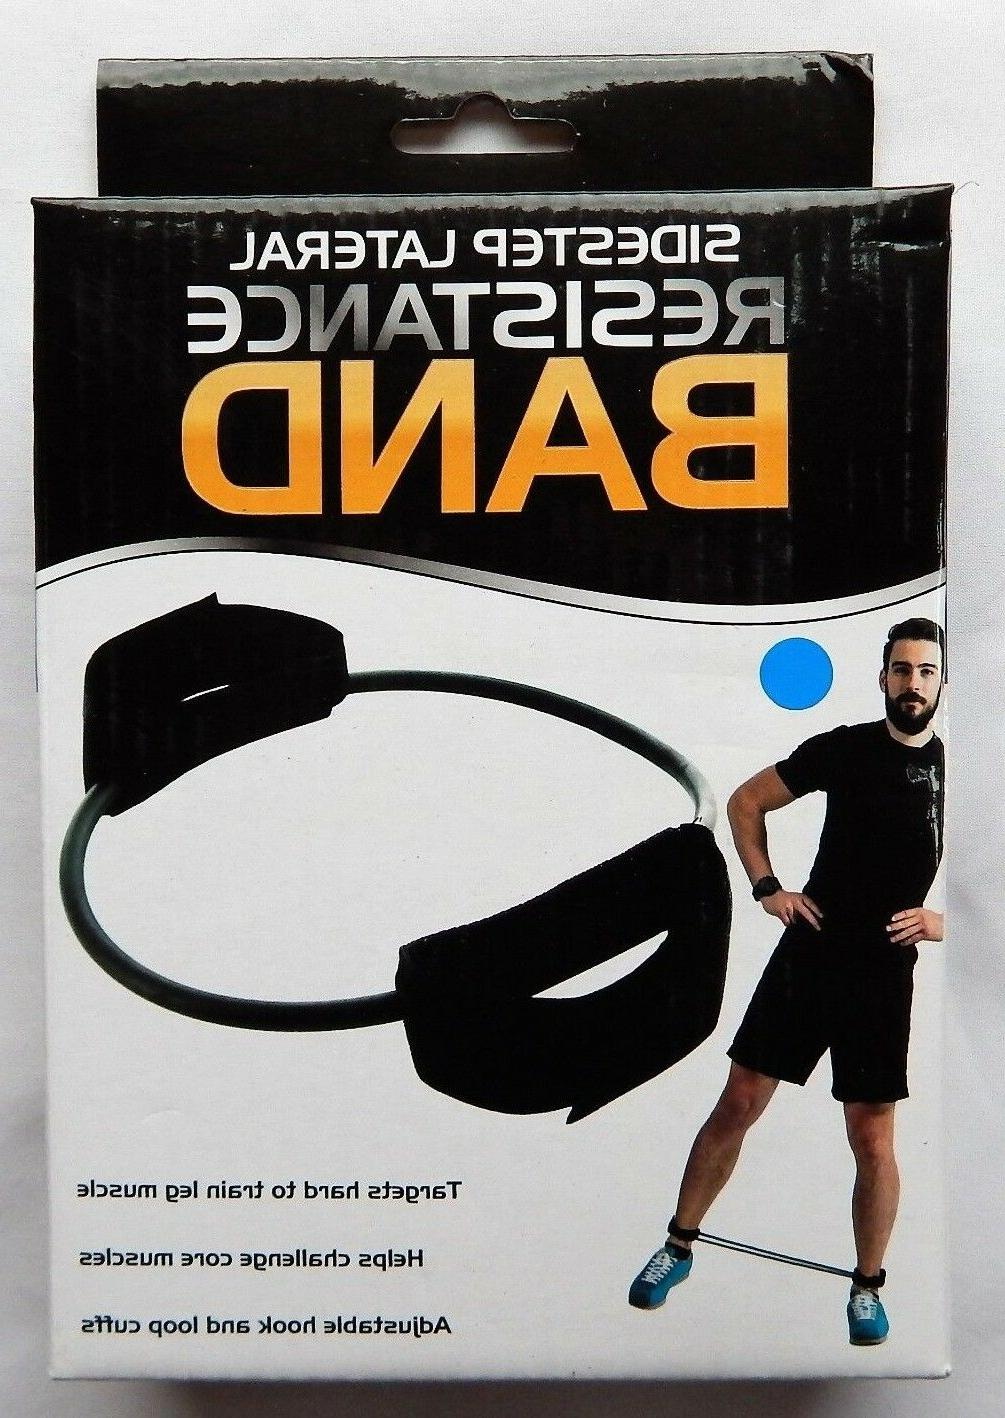 exercise leg resistance band with ankle cuffs